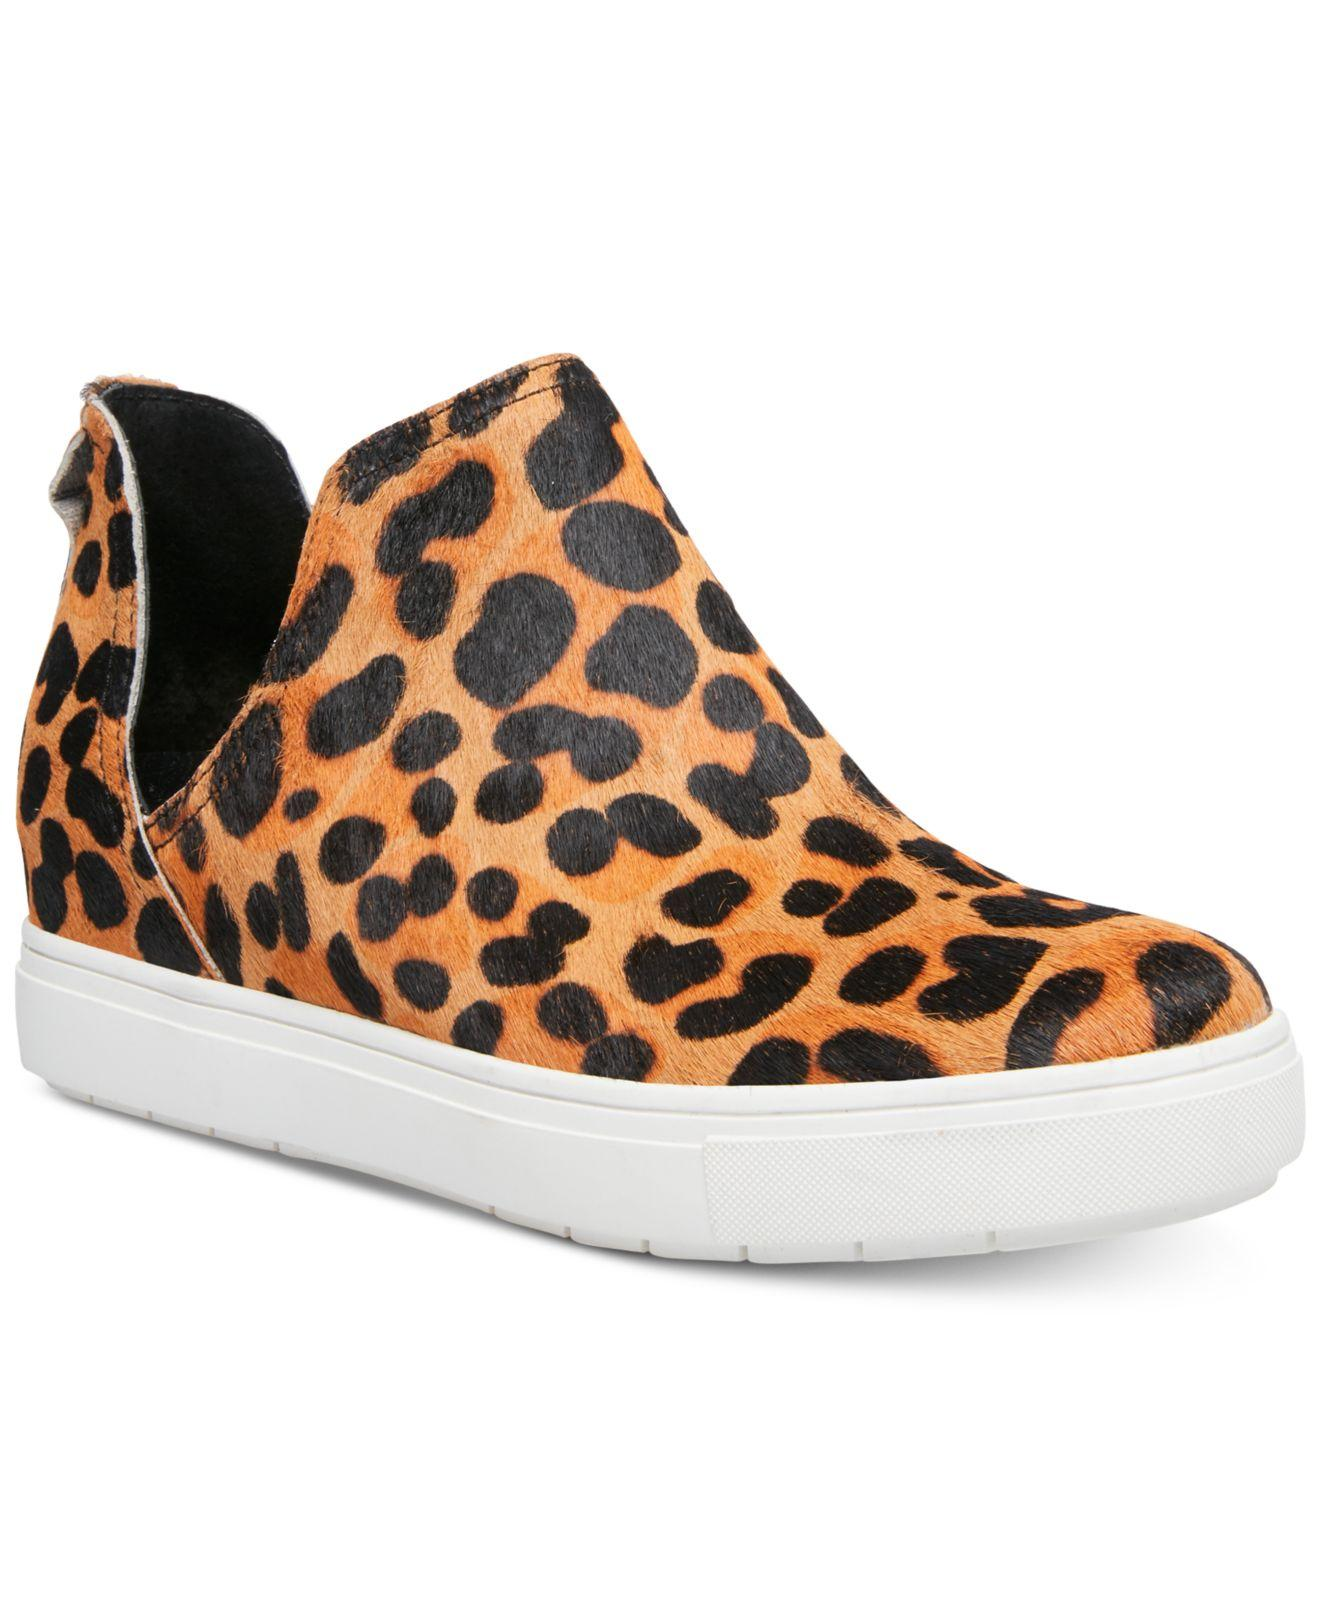 46edd49a73b Lyst - Steven by Steve Madden Caprice Wedge Sneakers - Save 15%